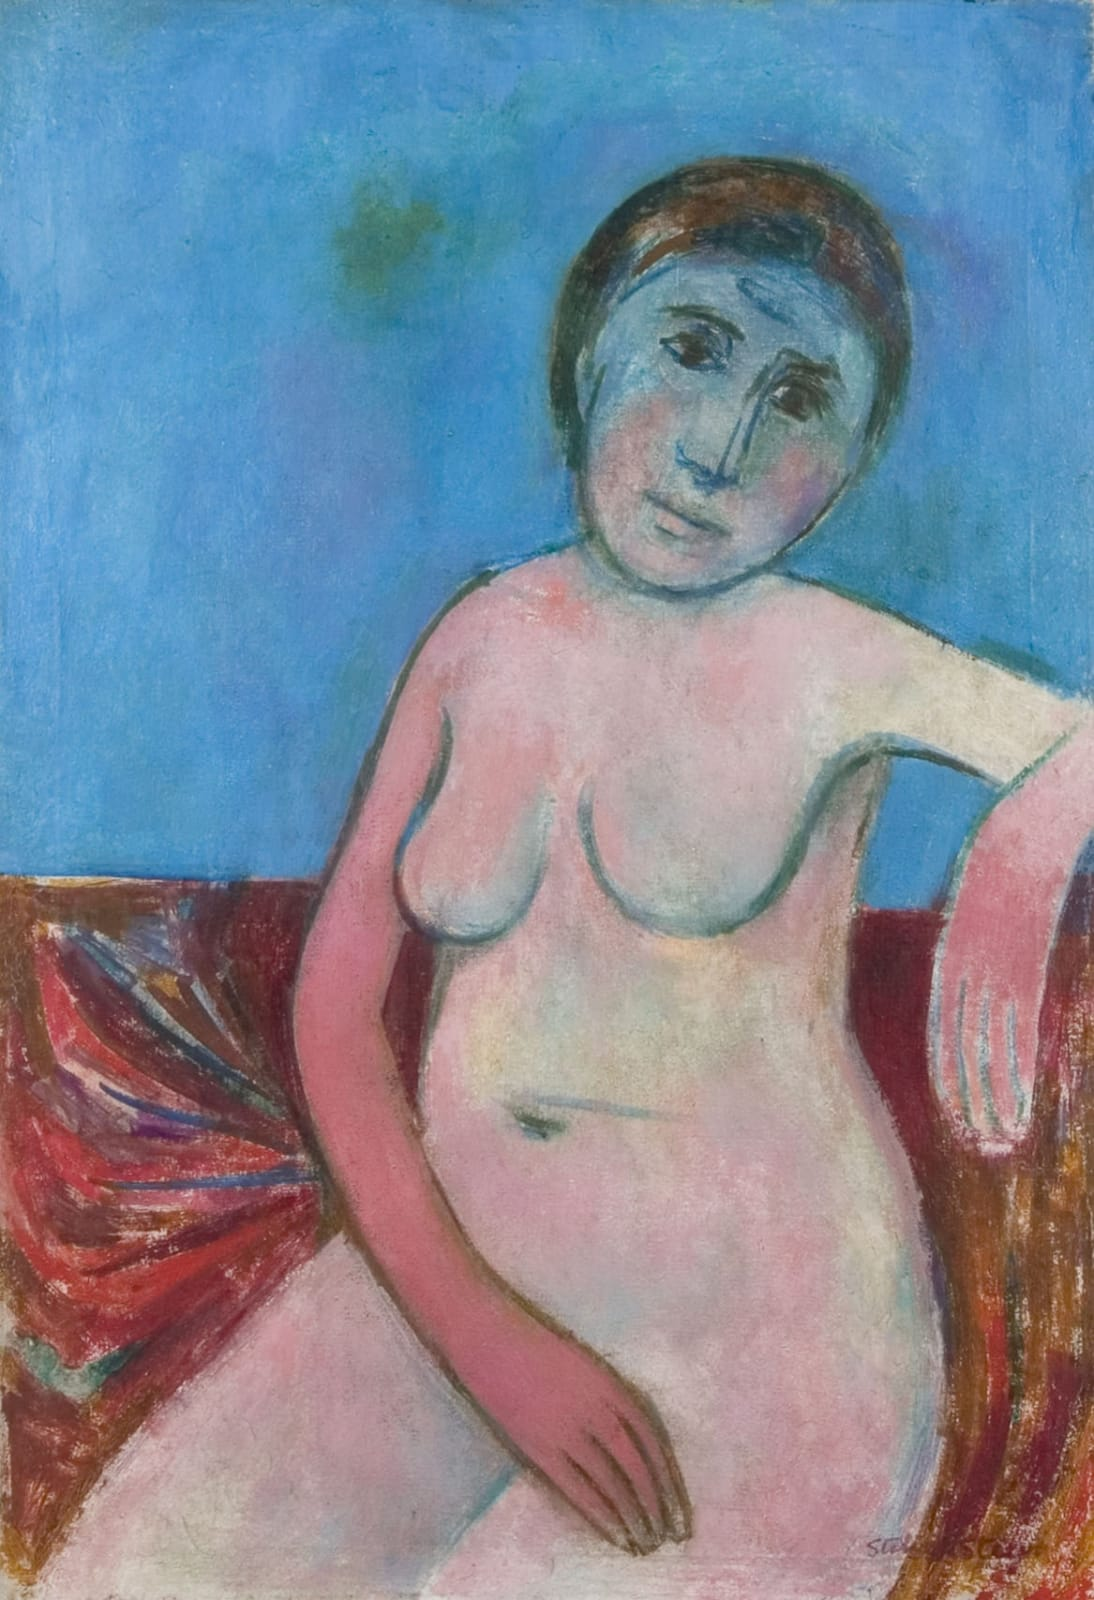 Portrait in blue Signed, dated Dec' 1948 verso Oil on canvas 28 3/4 x 19 3/4 inches